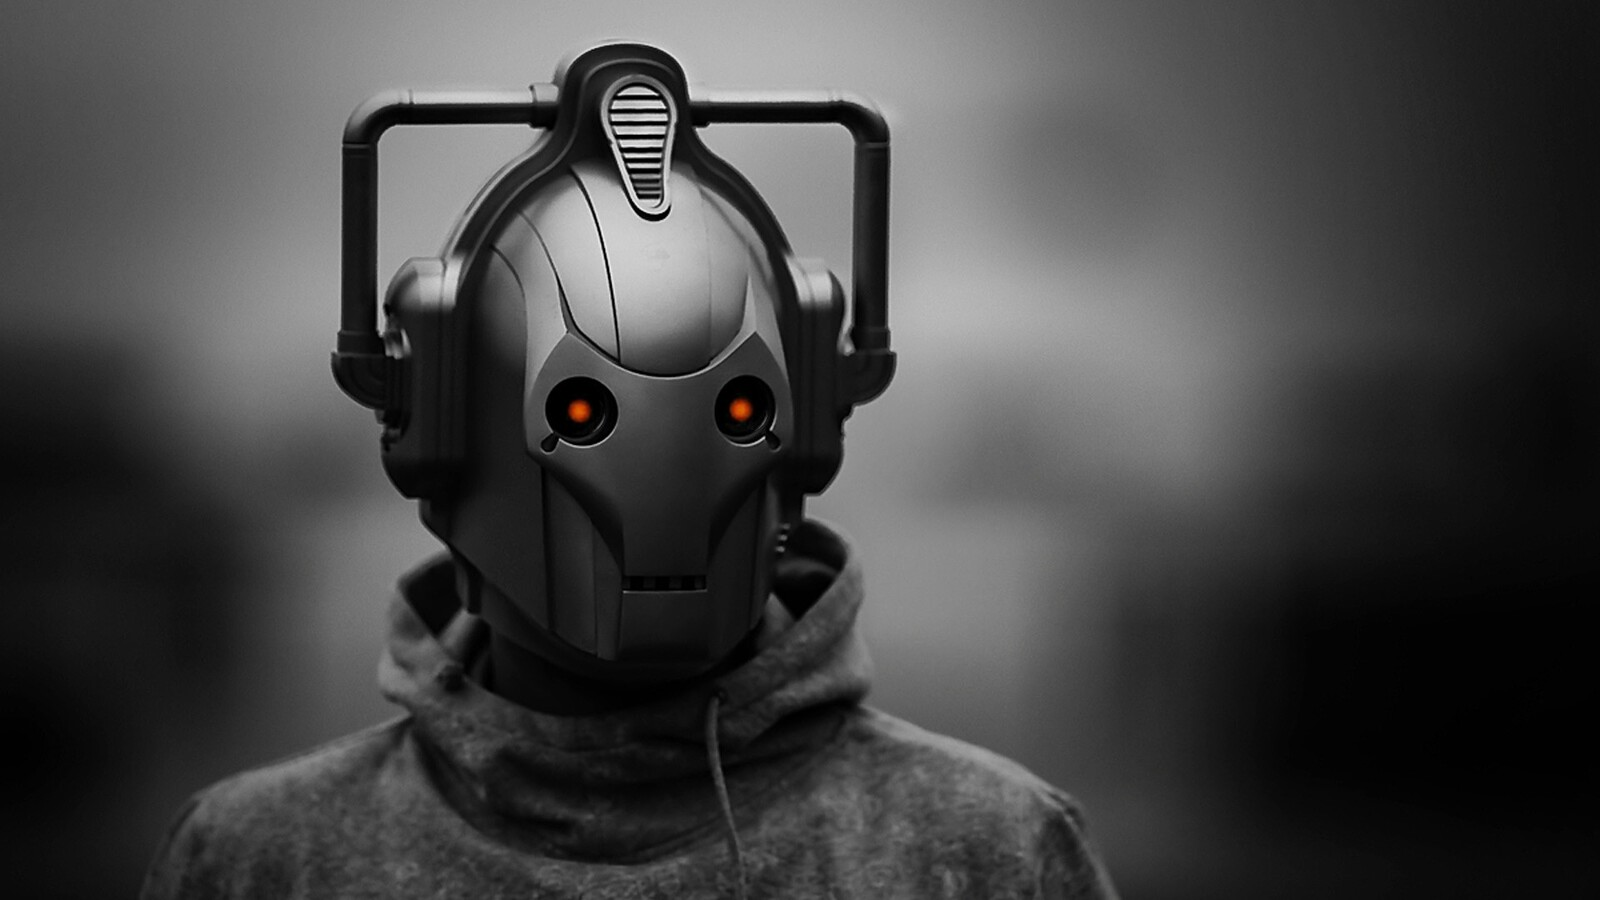 1600x900 Cyberman Doctor Who 1600x900 Resolution Hd 4k